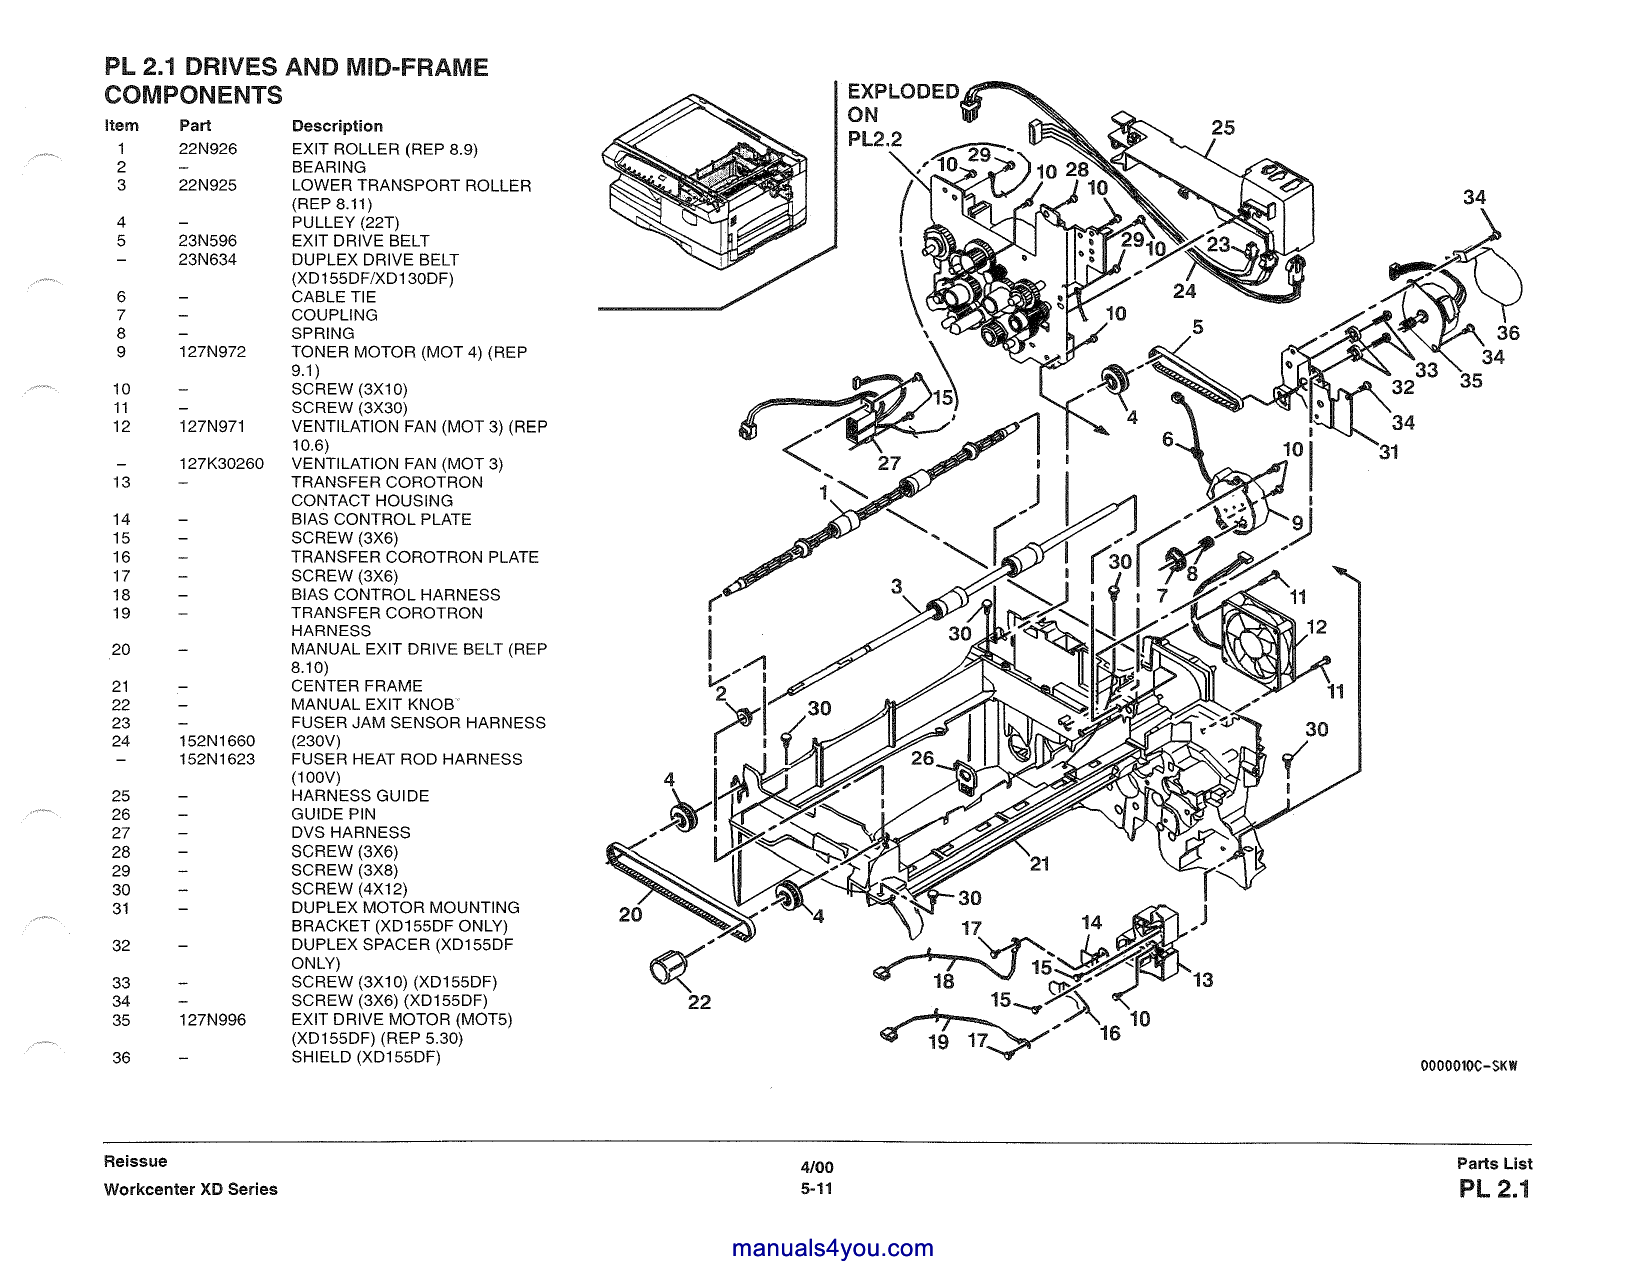 Xerox WorkCentre XD Series Parts List and Service Manual